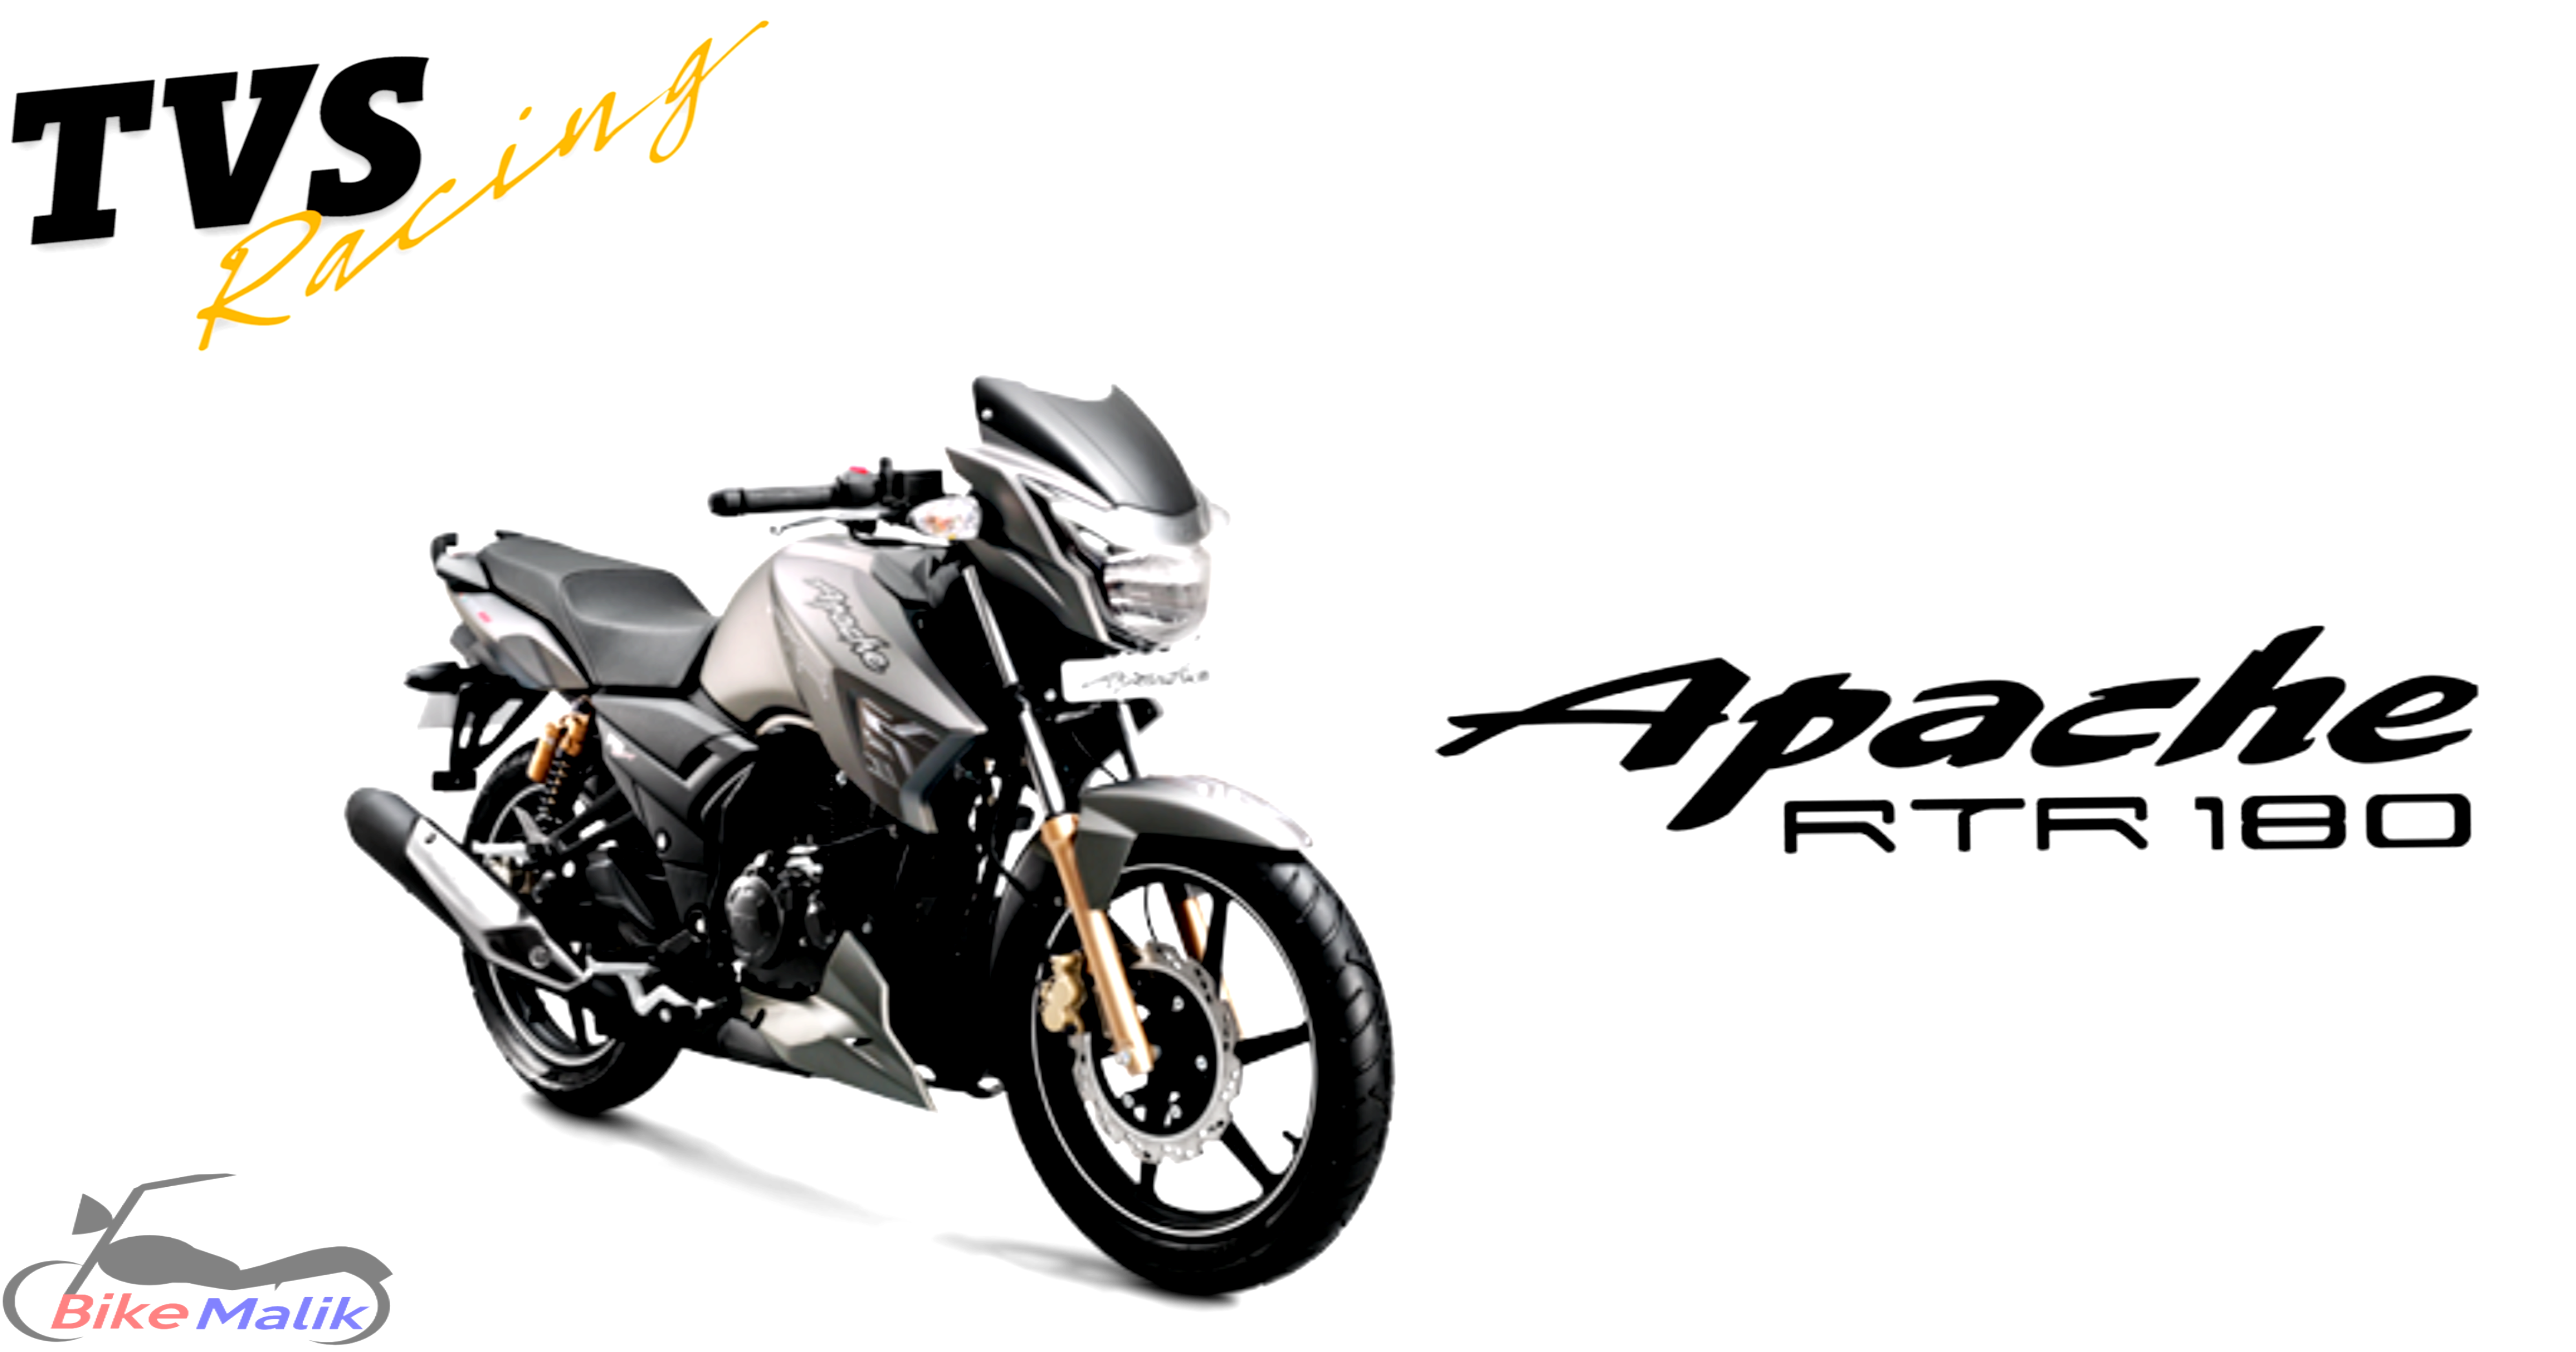 Tvs Apache Rtr 180 Is Offered In 4 Elegant Colors As.